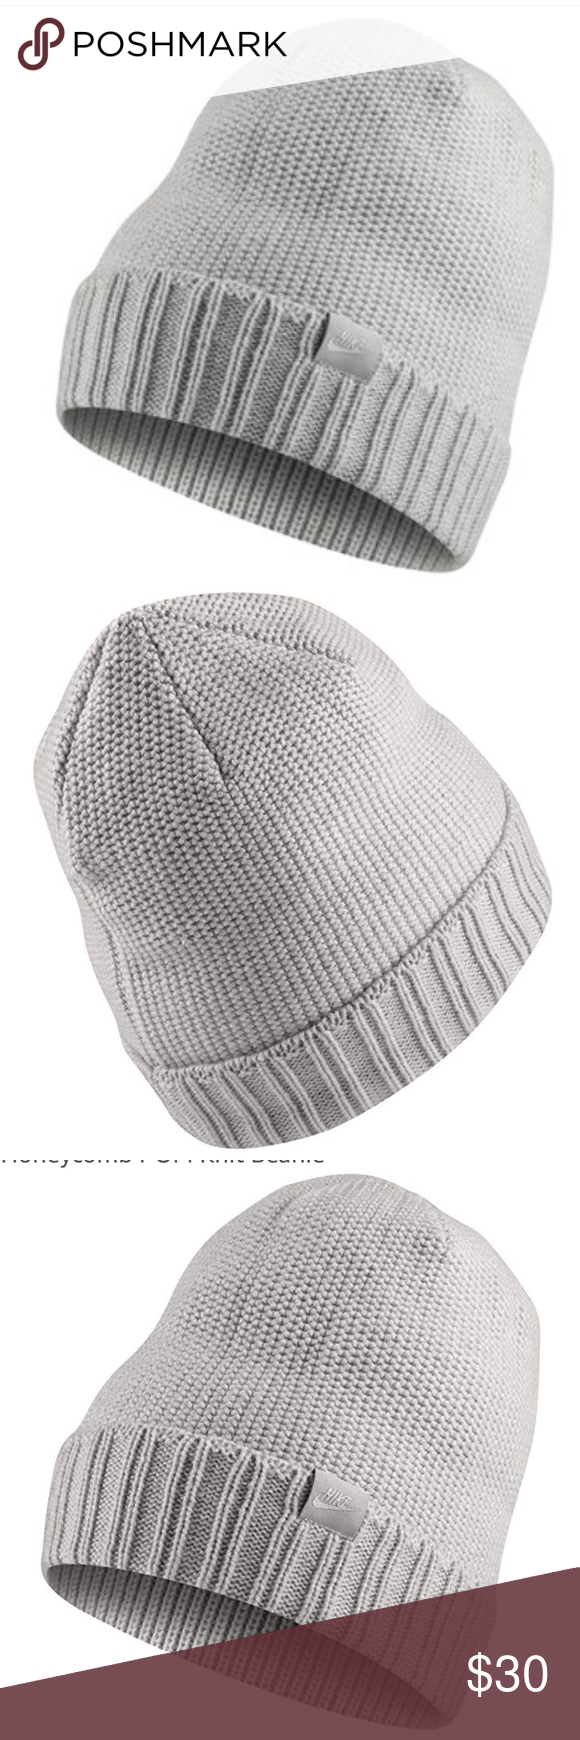 6f74e0f8563 New NIKE Unisex Knit Beanie Hat Featuring a Soft Knit Fabric